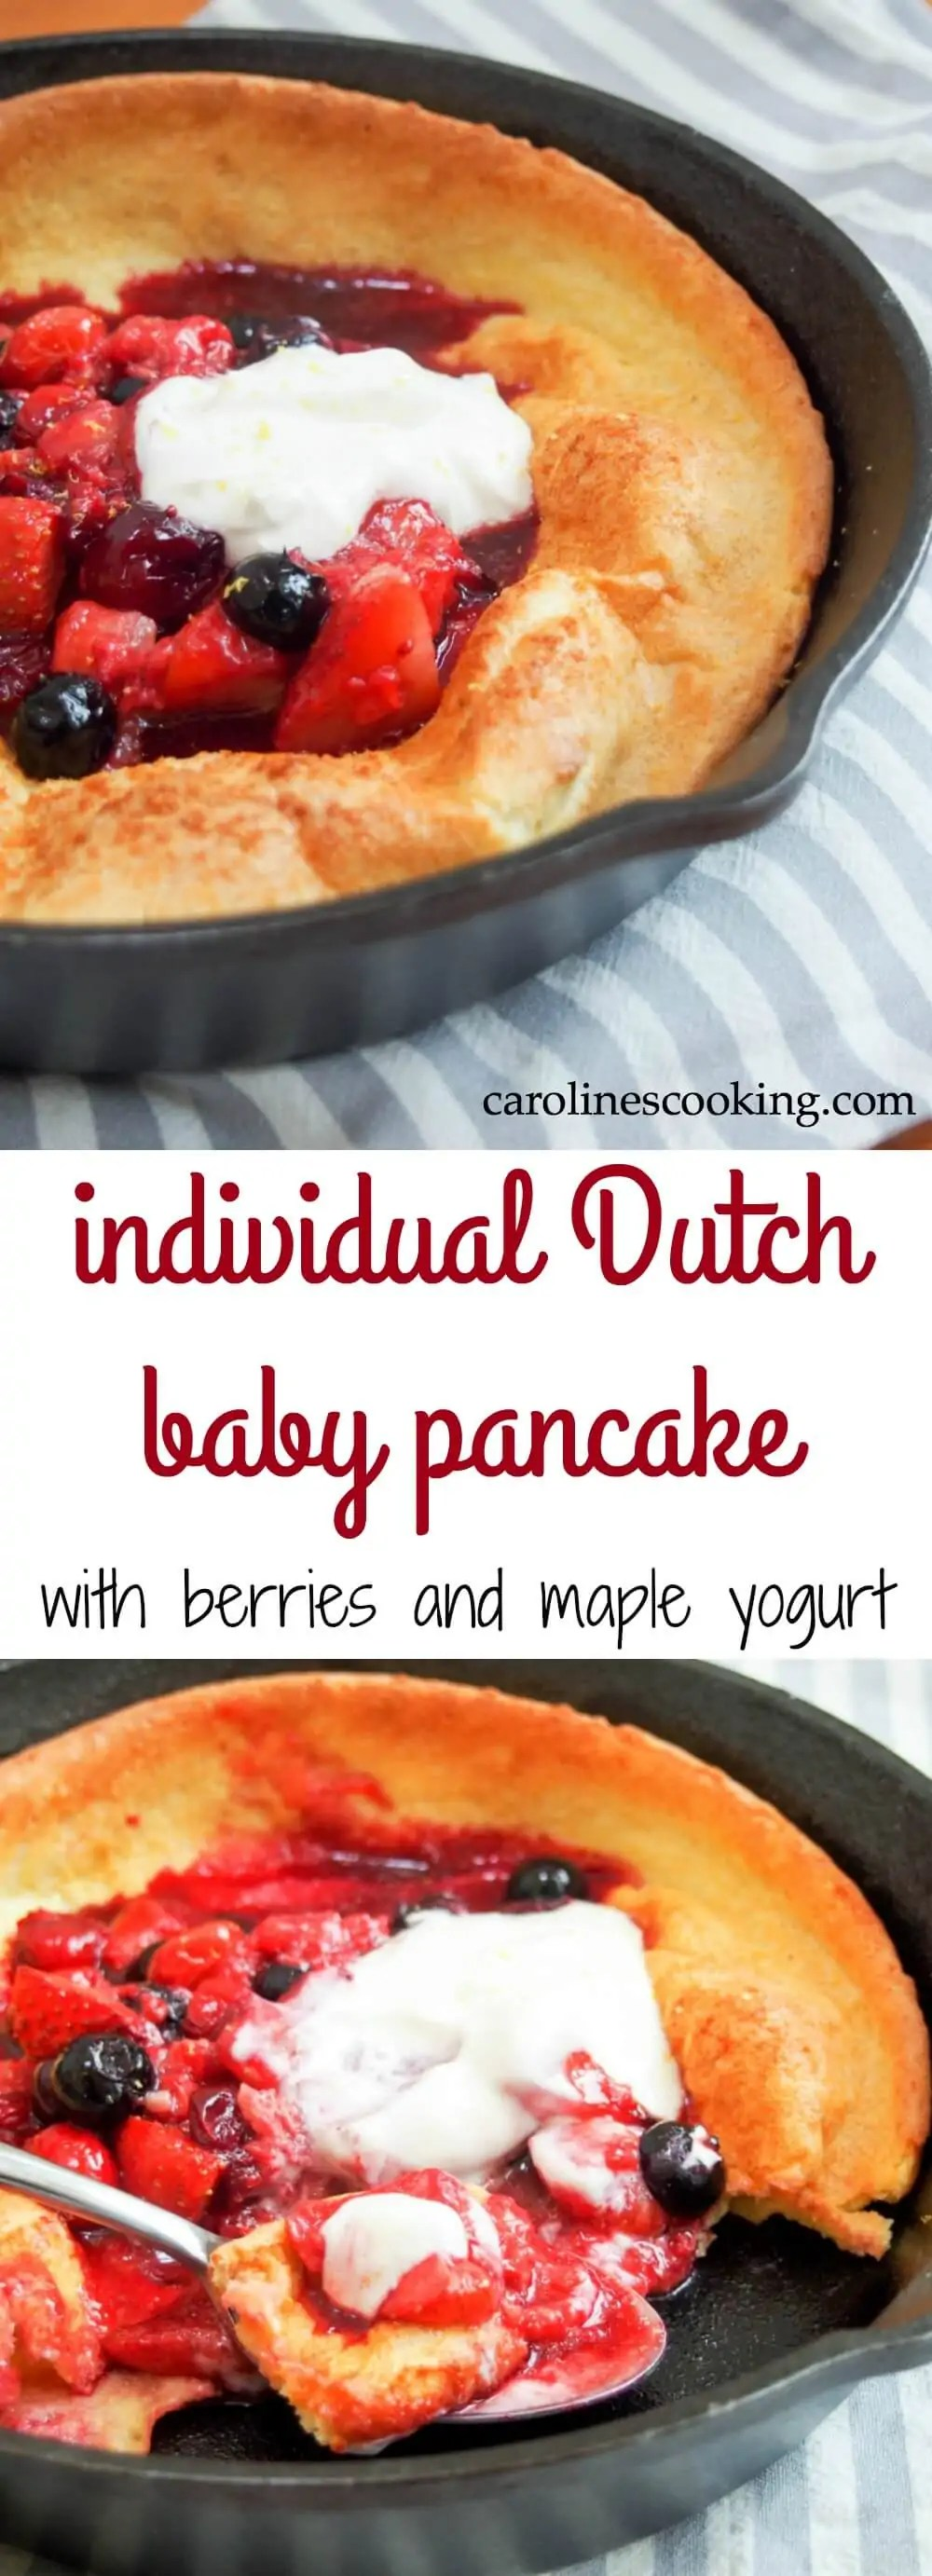 Healthy and quick enough for breakfast or brunch, sweet enough for dessert, this individual Dutch baby pancake with berries & maple yogurt is easy & delicious. No refined sugar too.